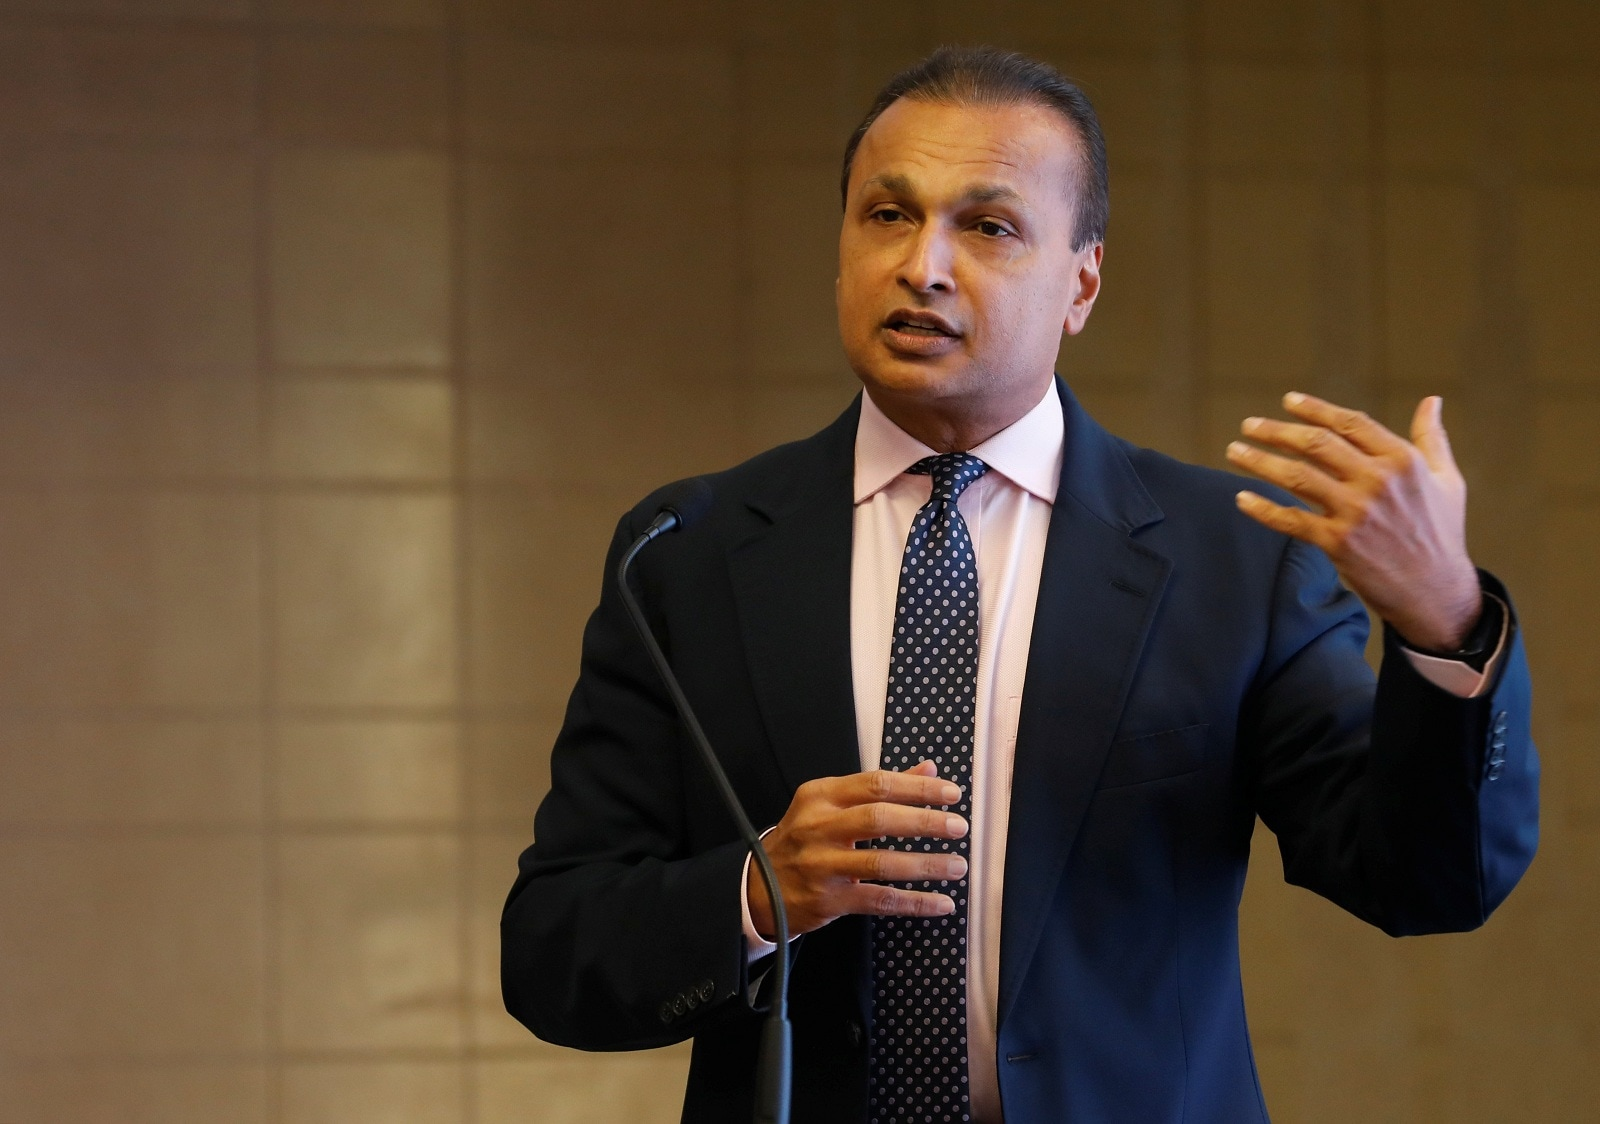 Reliance Communications and RIL: Nearly 15 months after Anil Ambani agreed to sell assets of Reliance Communications to a telecom firm run by elder brother Mukesh, the two groups on Monday called off the deal citing delays in approval from the government and lenders. (Image: Reuters)